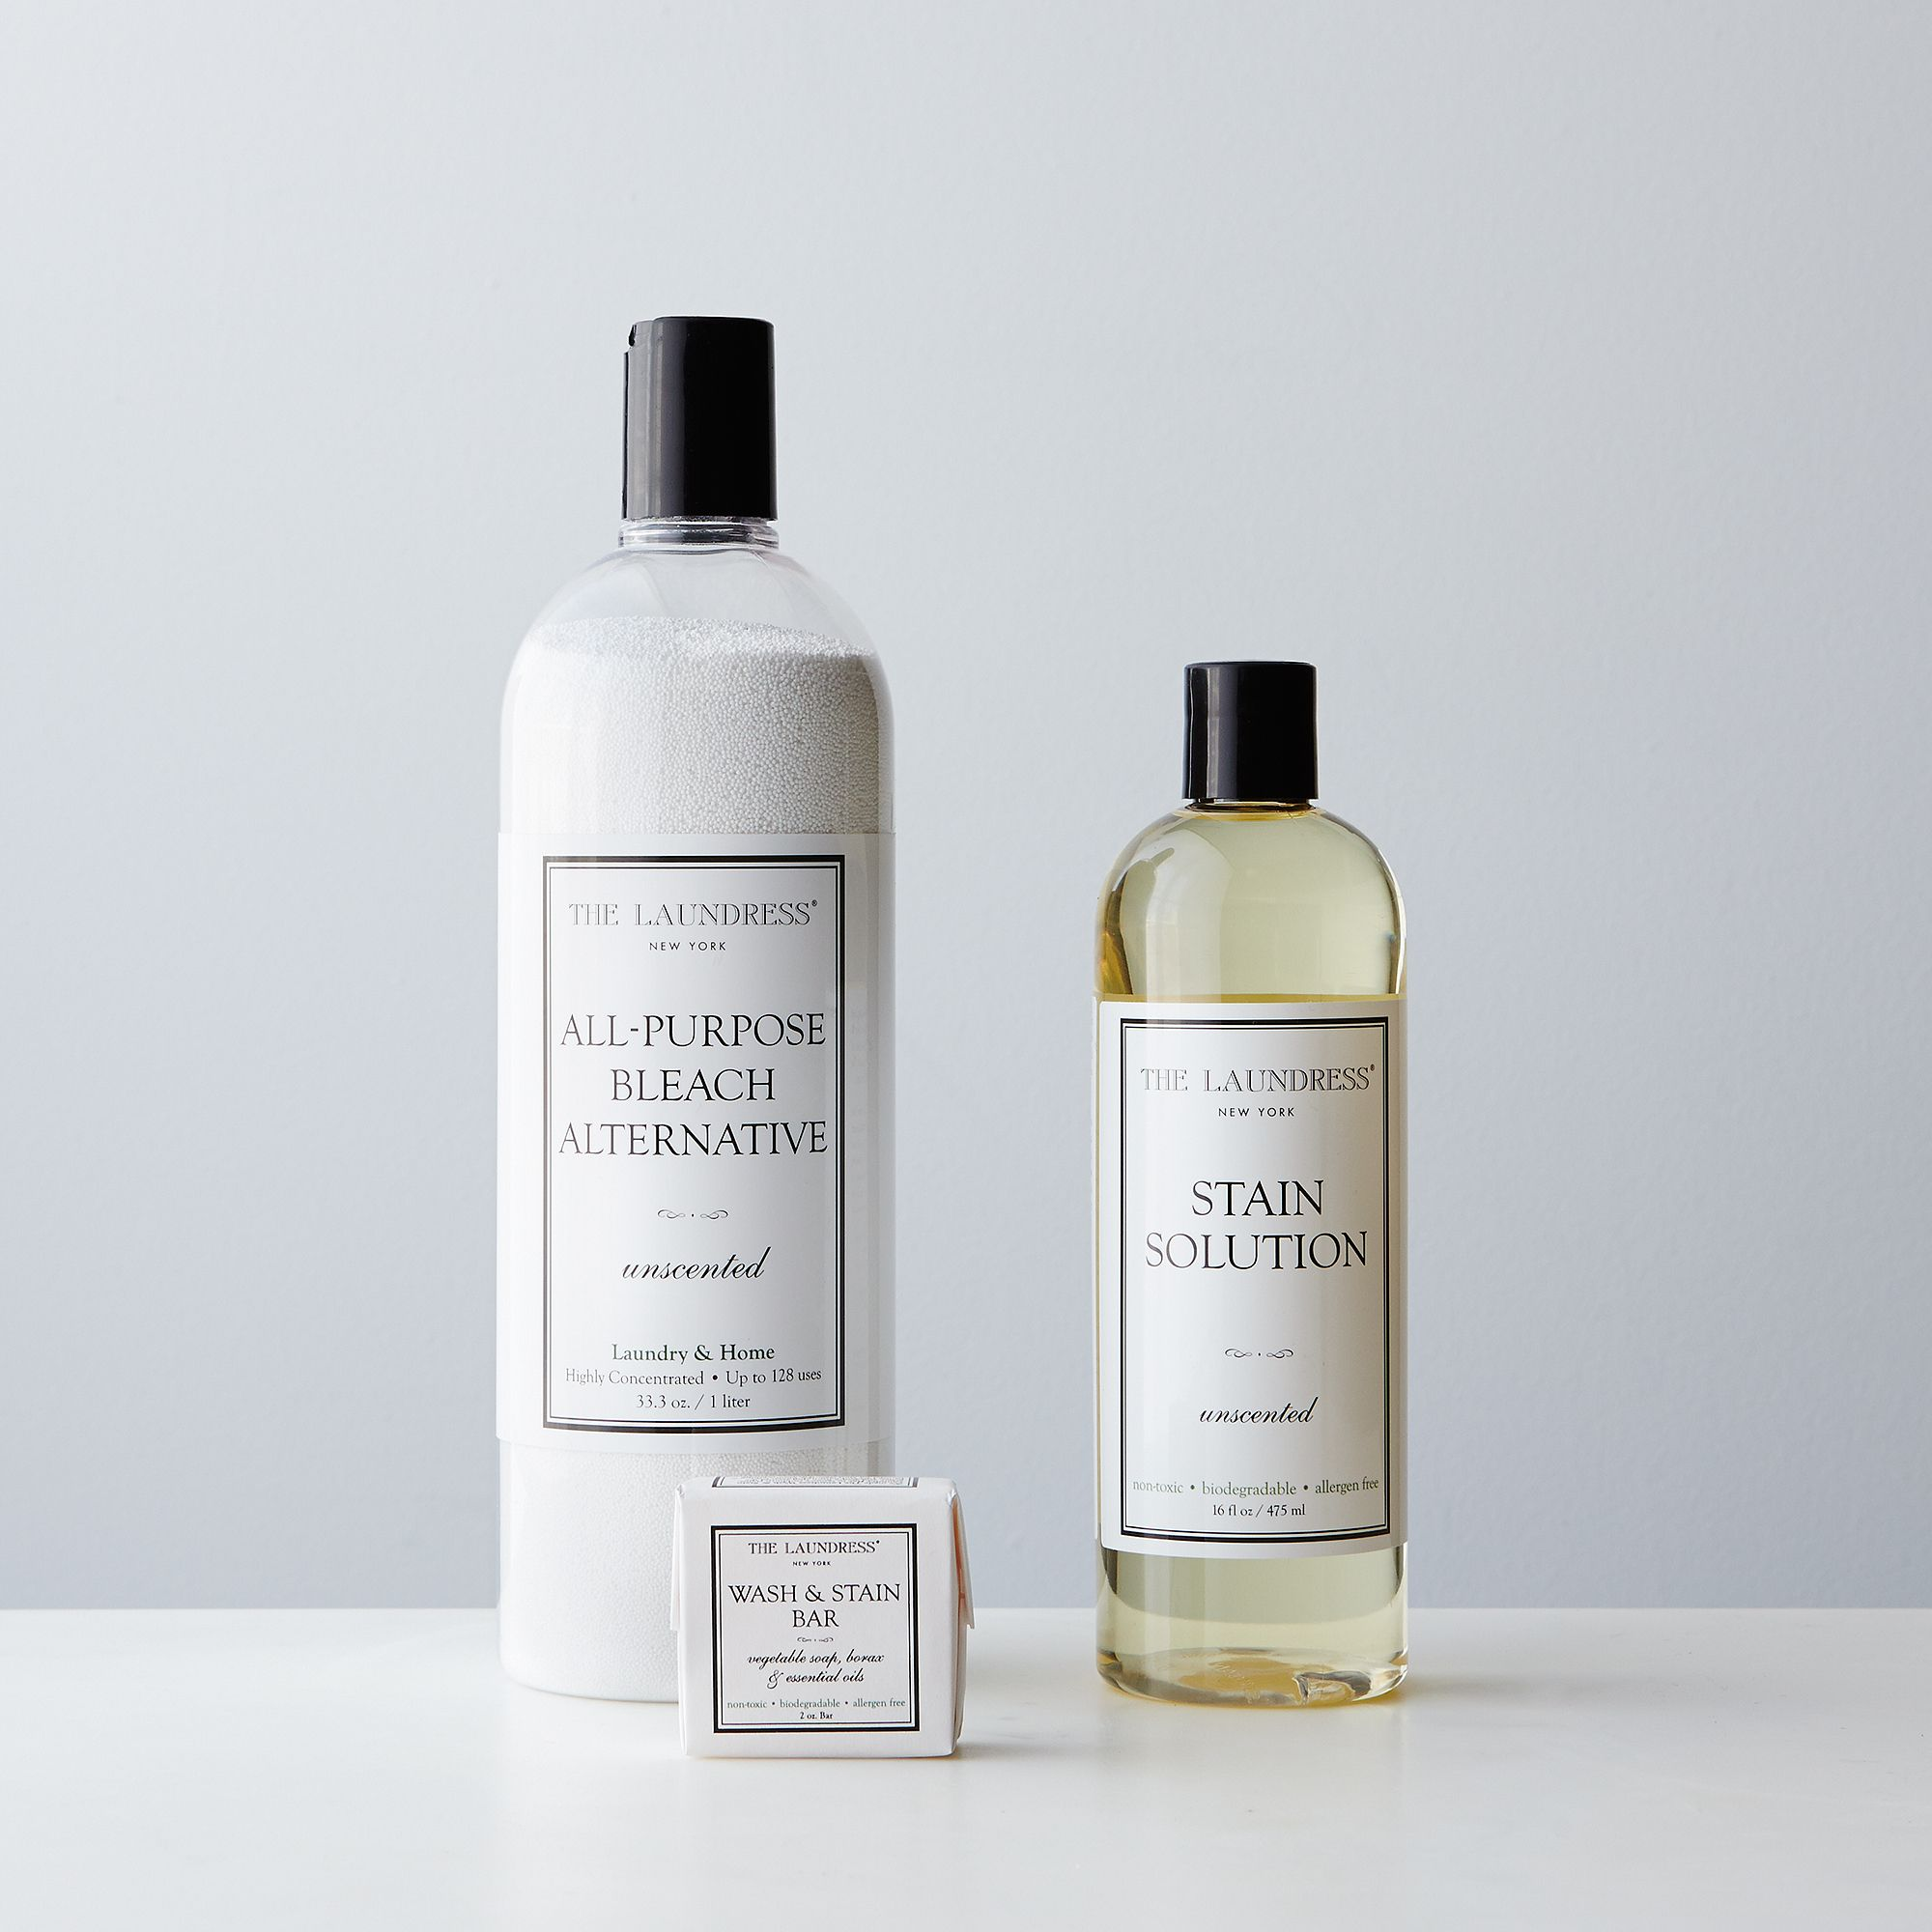 6e0359b9 c62a 45b5 9e49 9d71dca9fcb2  the laundress stain solution bleach alternative stain bar provisions mark weinberg 09 04 14 0832 silo